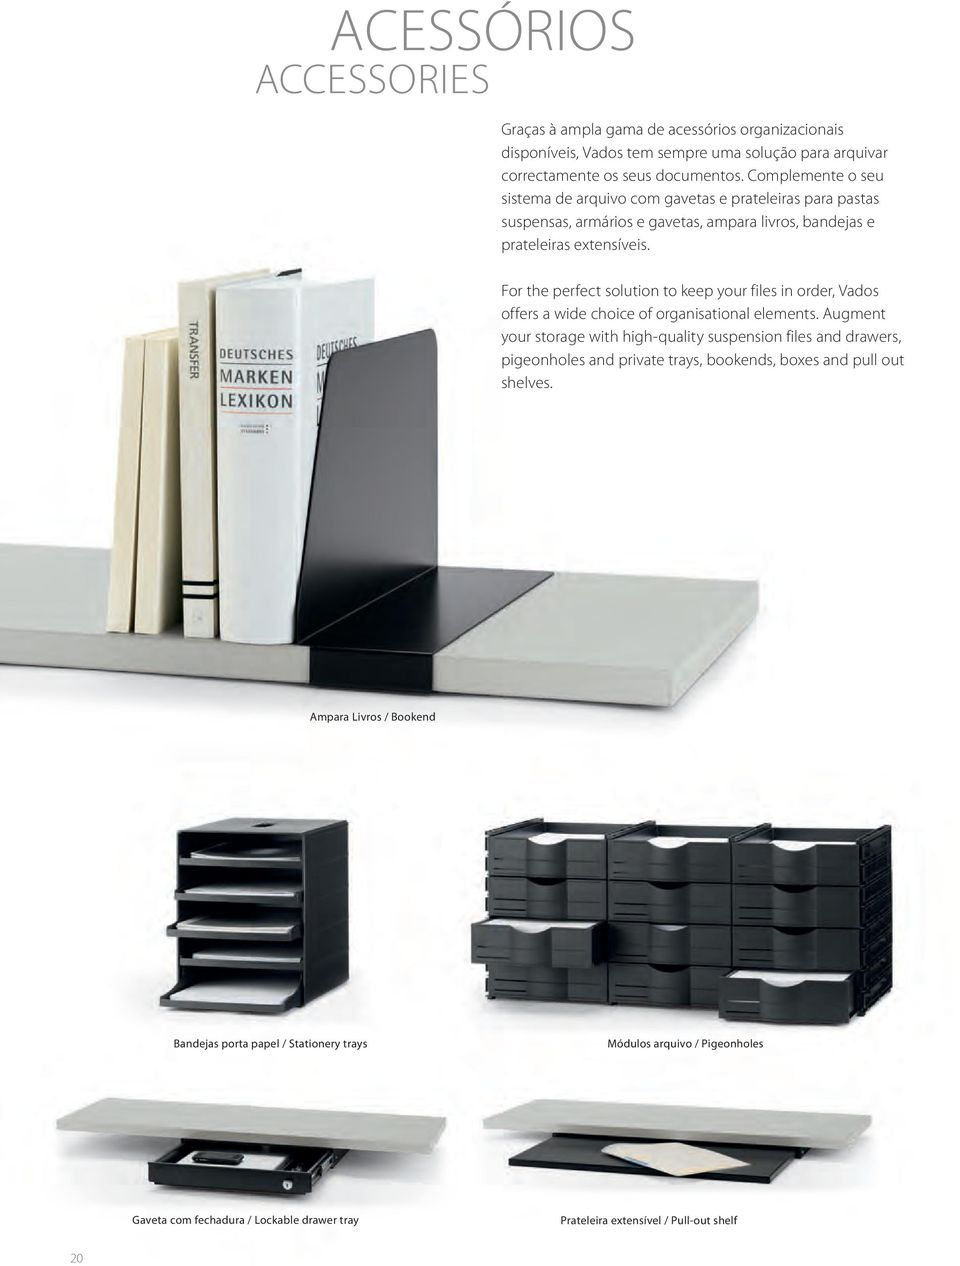 For the perfect solution to keep your files in order, Vados offers a wide choice of organisational elements.